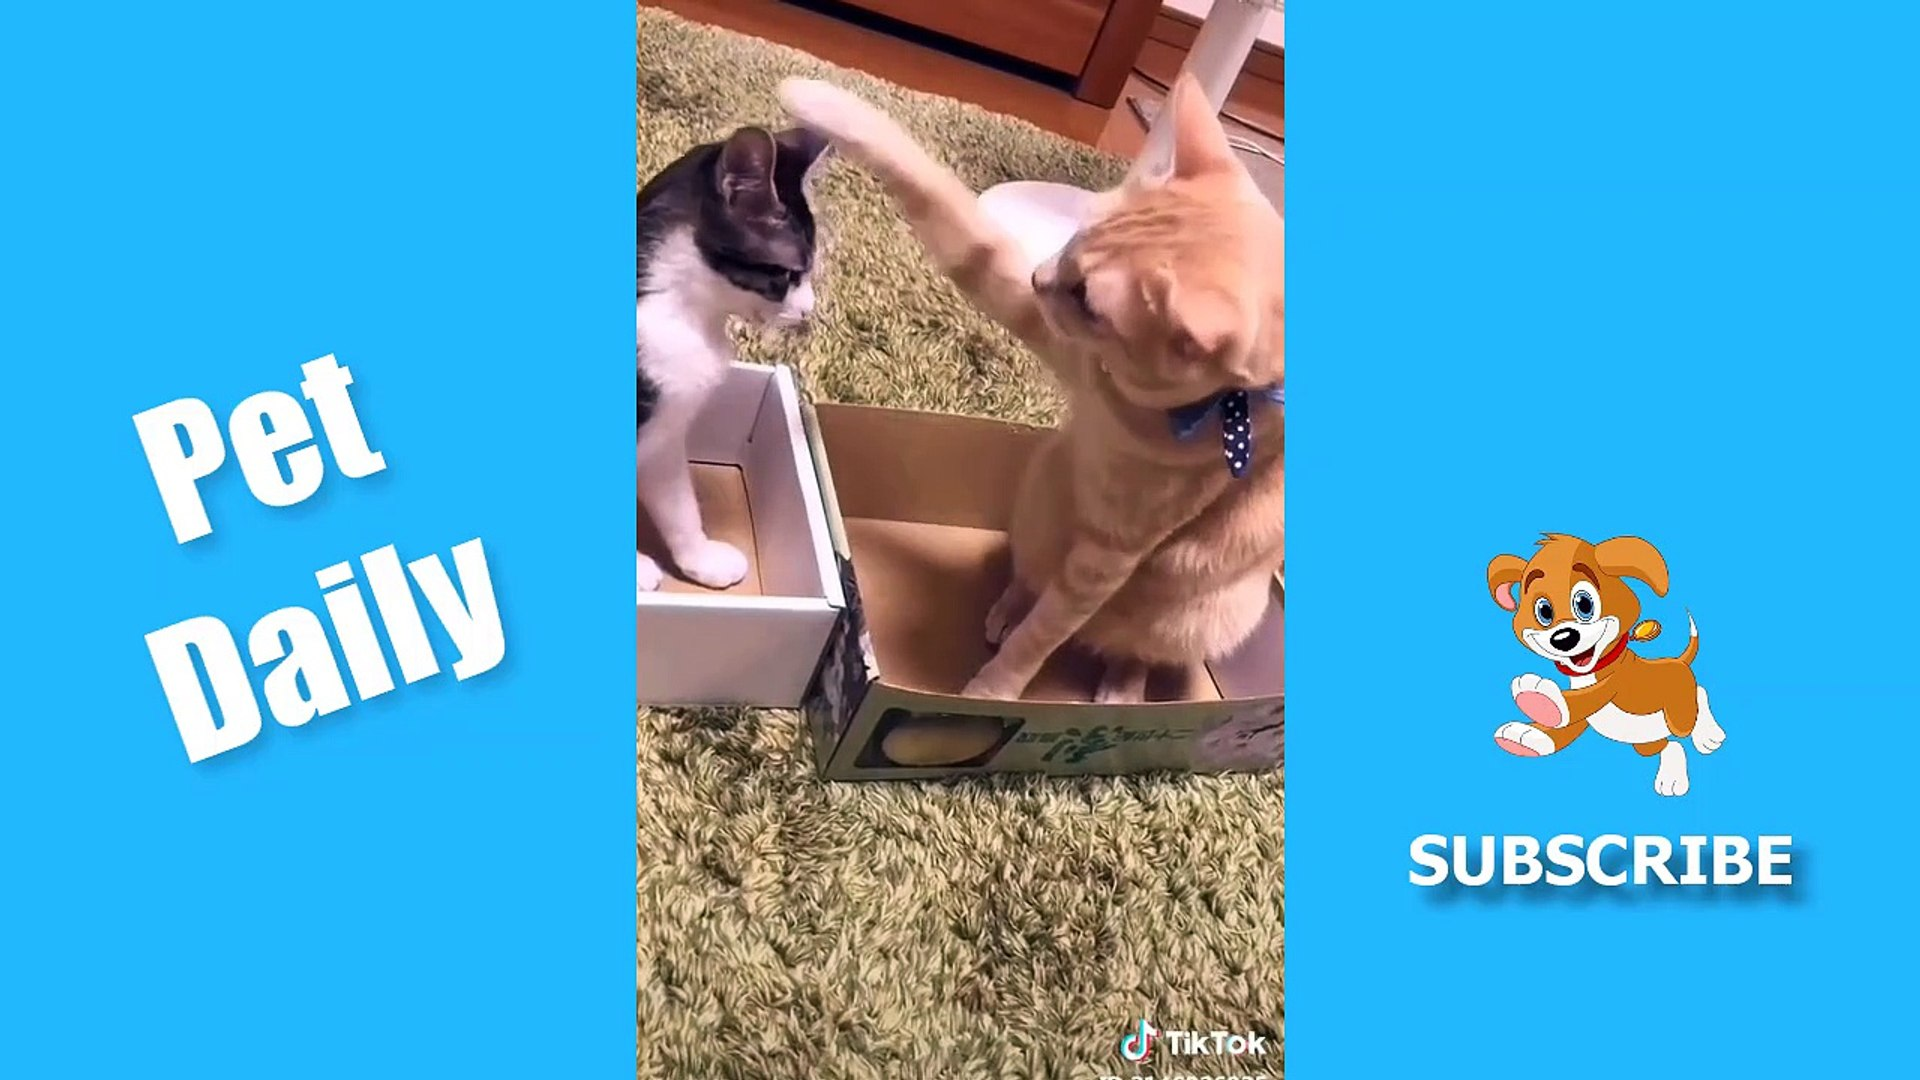 Pet Daily Funny Animals TikTok Pets Compilation #1